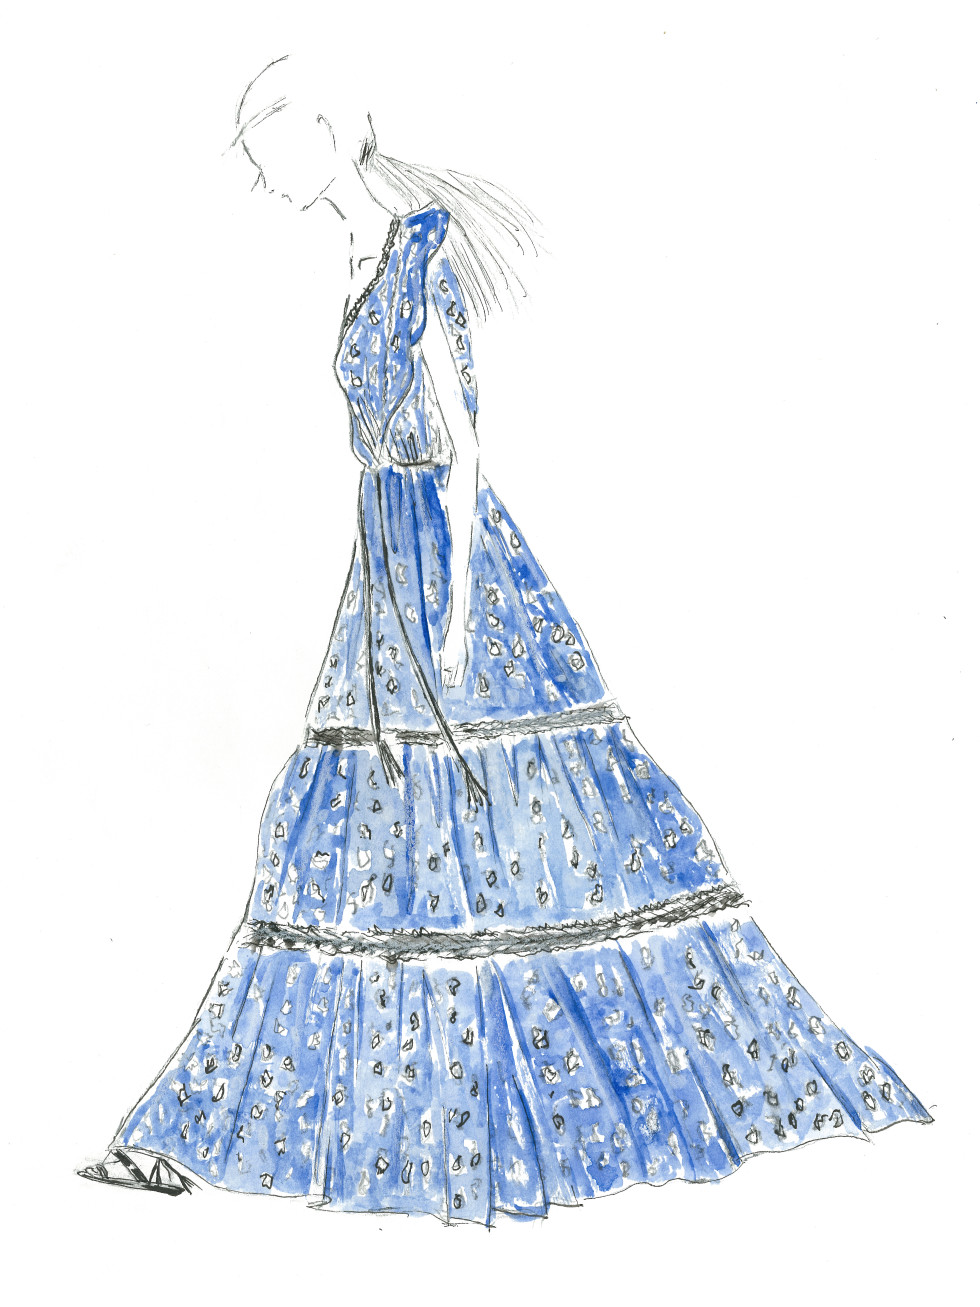 Eli Tahari spring 2016 sketch New York Fashion Week